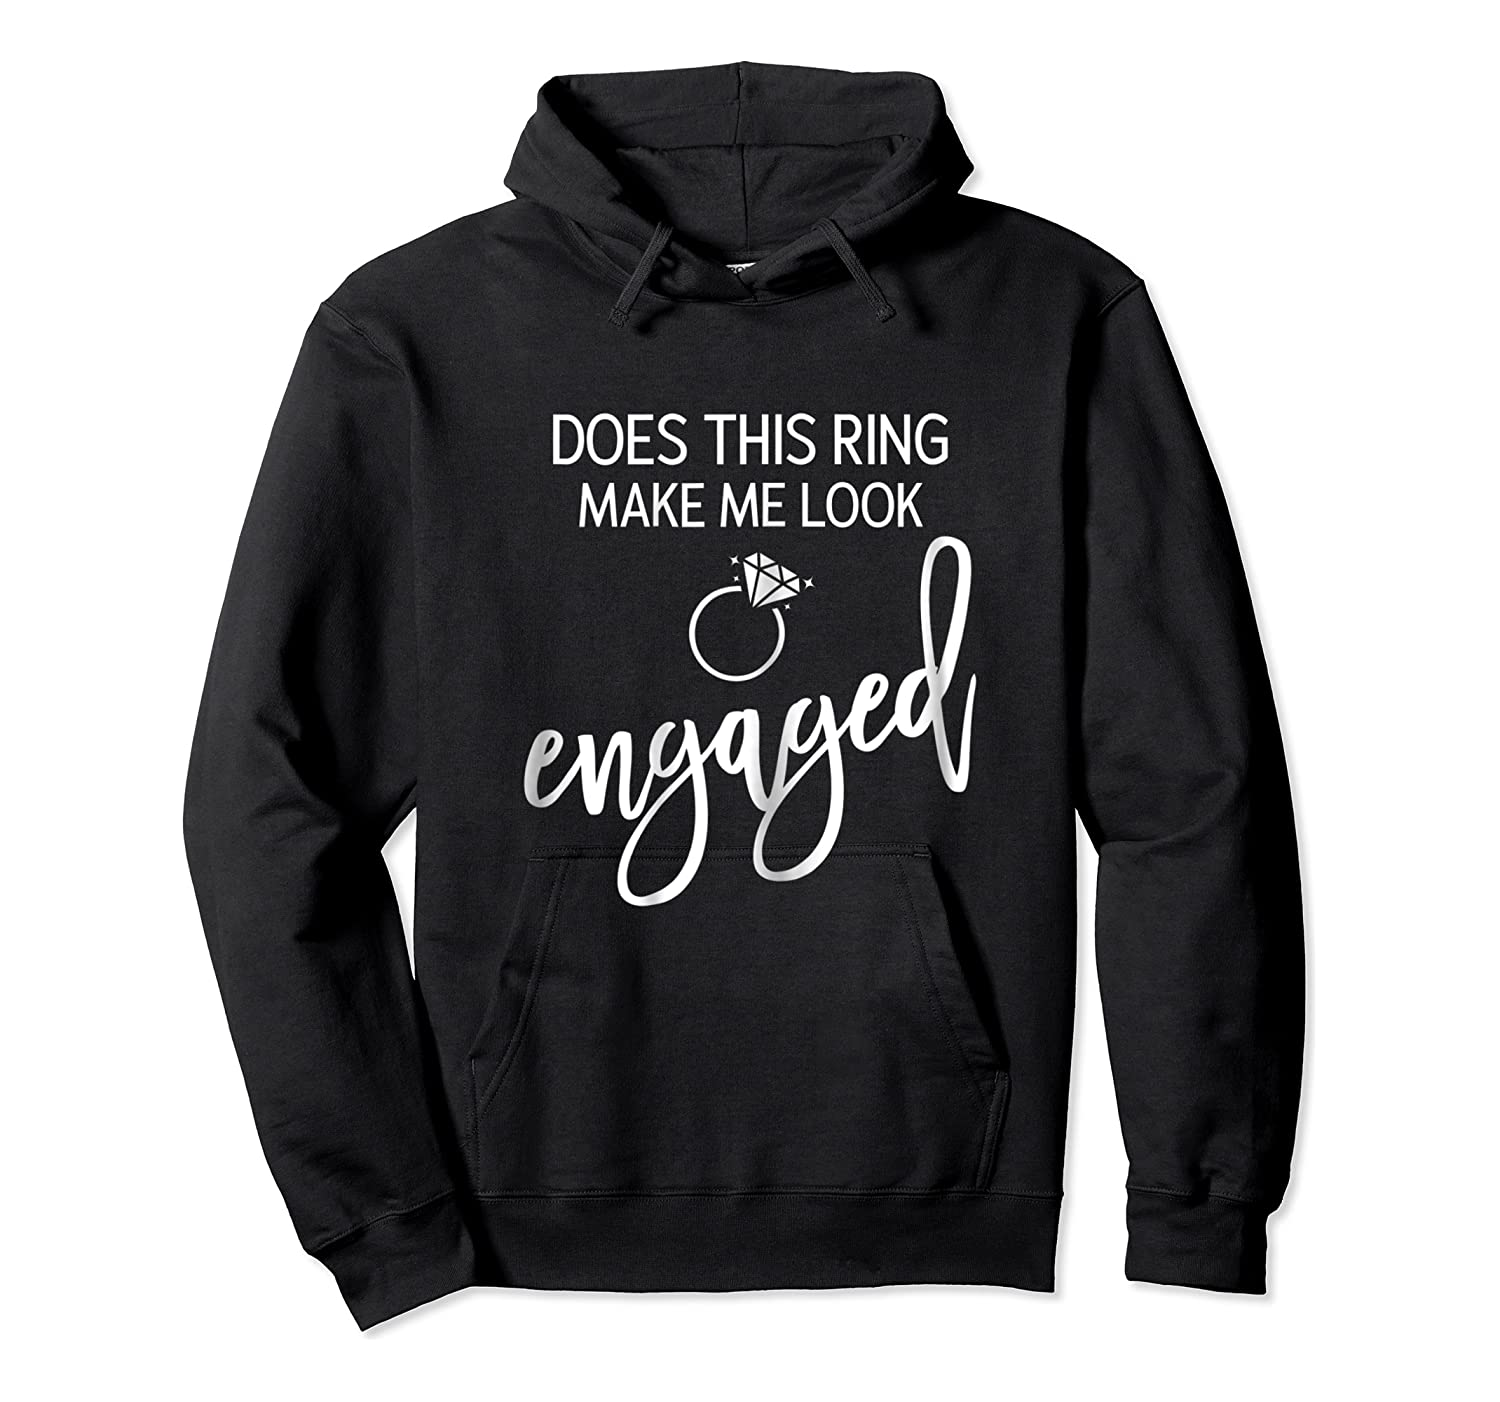 Does This Ring Make Me Look Engaged Navy Blue Shirt Unisex Pullover Hoodie